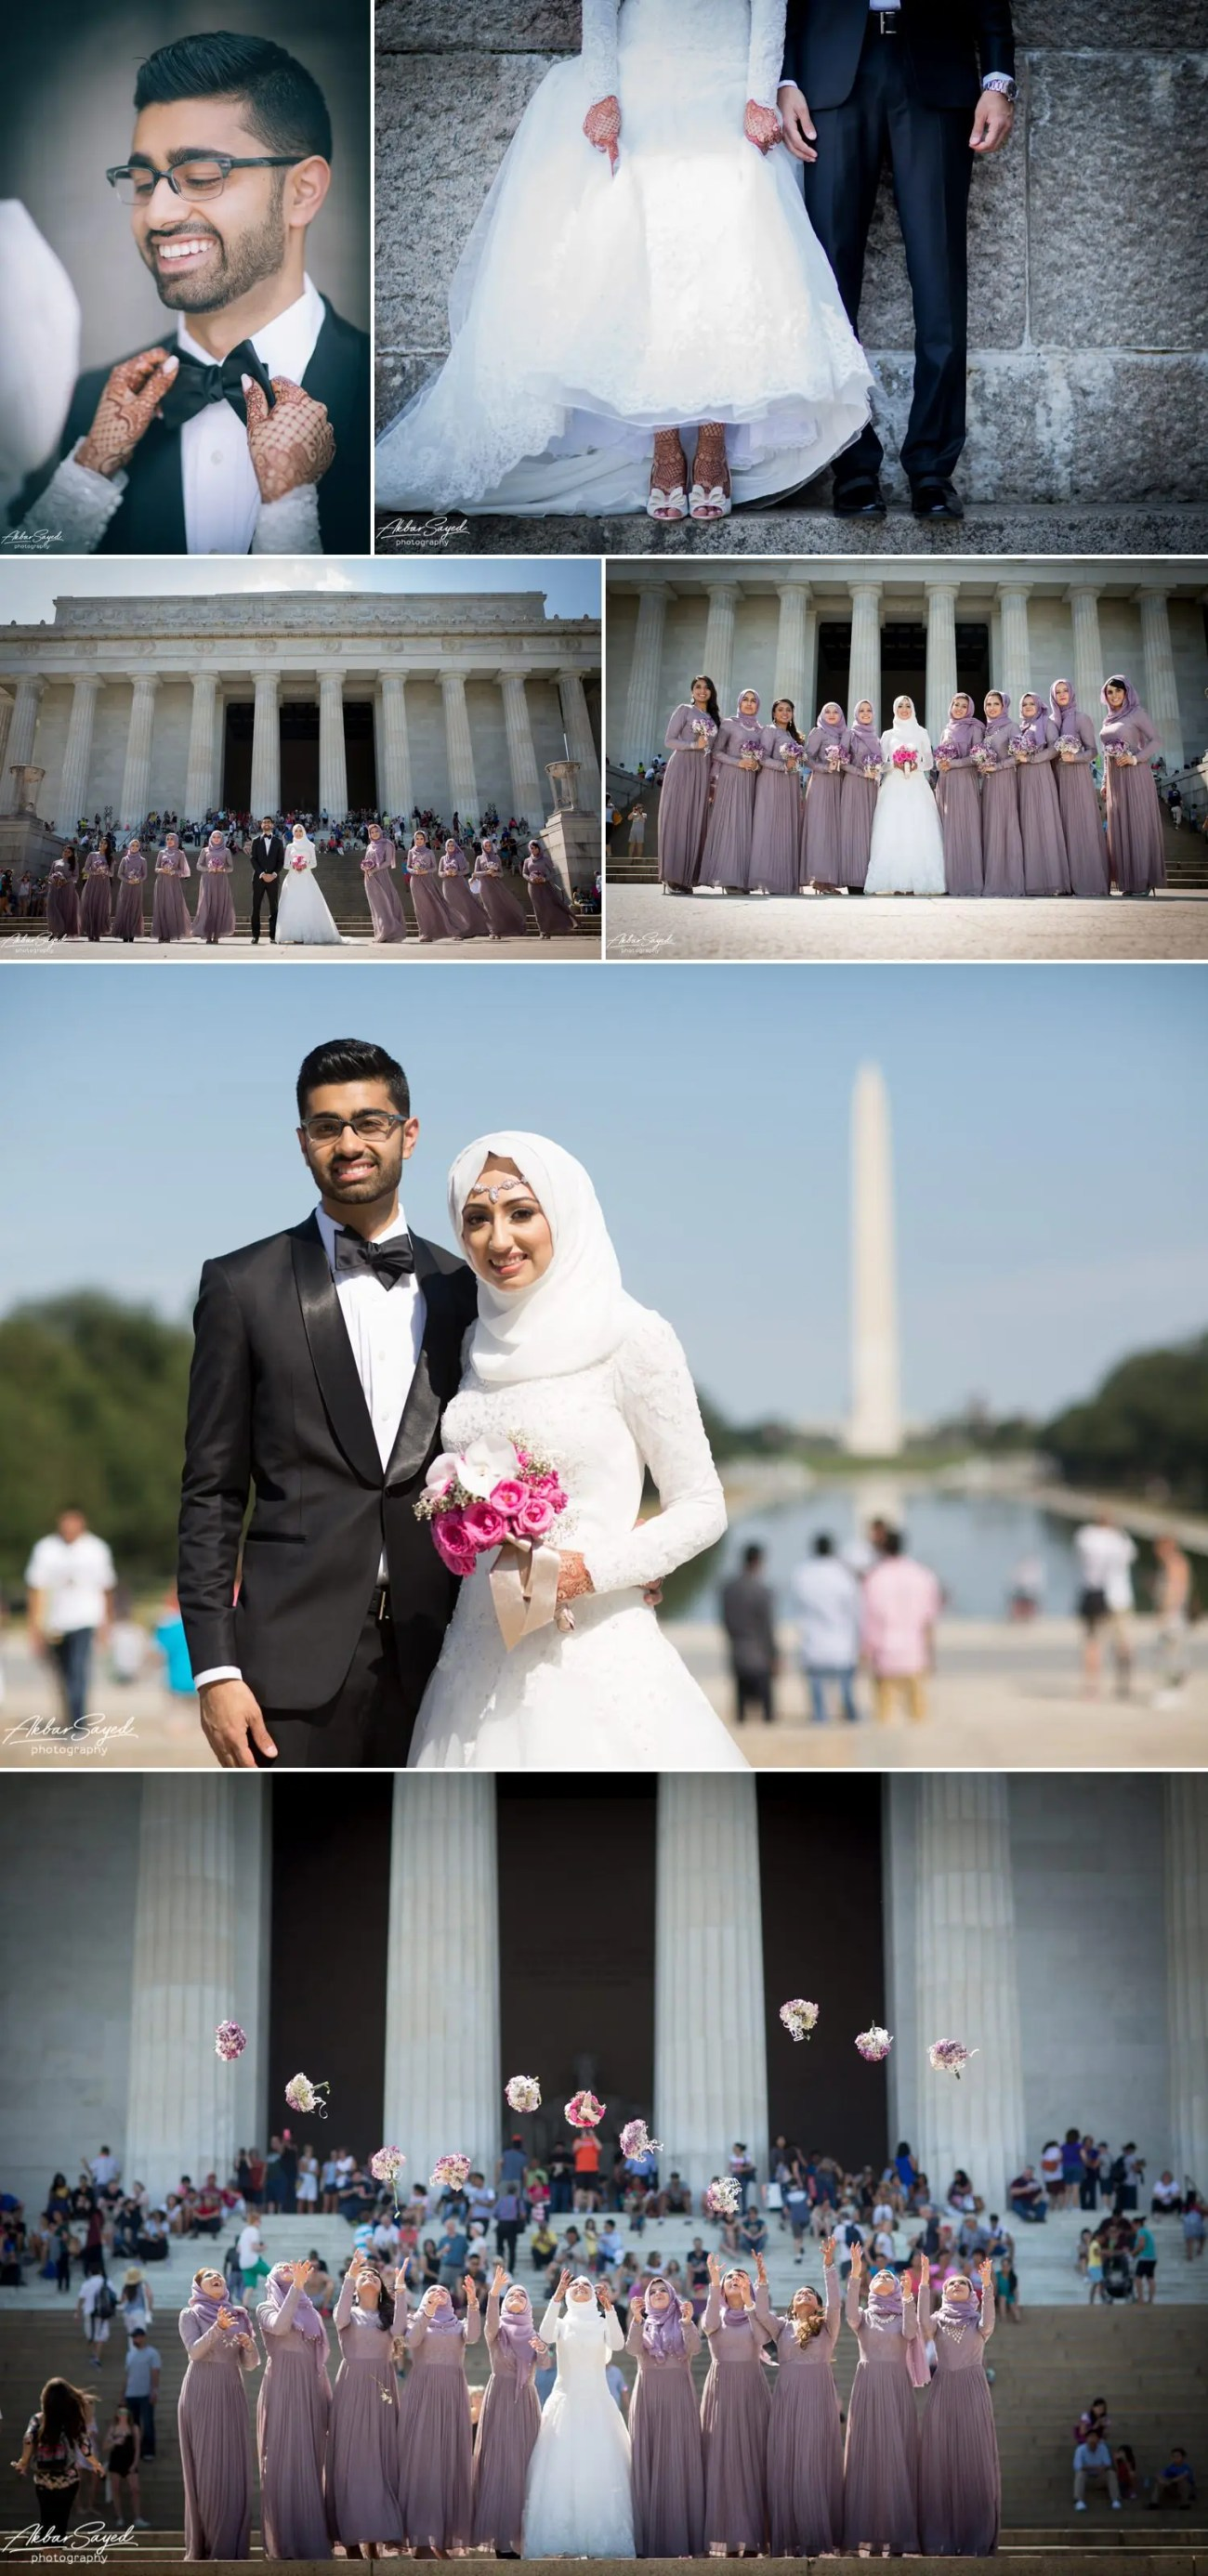 Asad and Sehar - National Mall Bridal Party Portraits 8